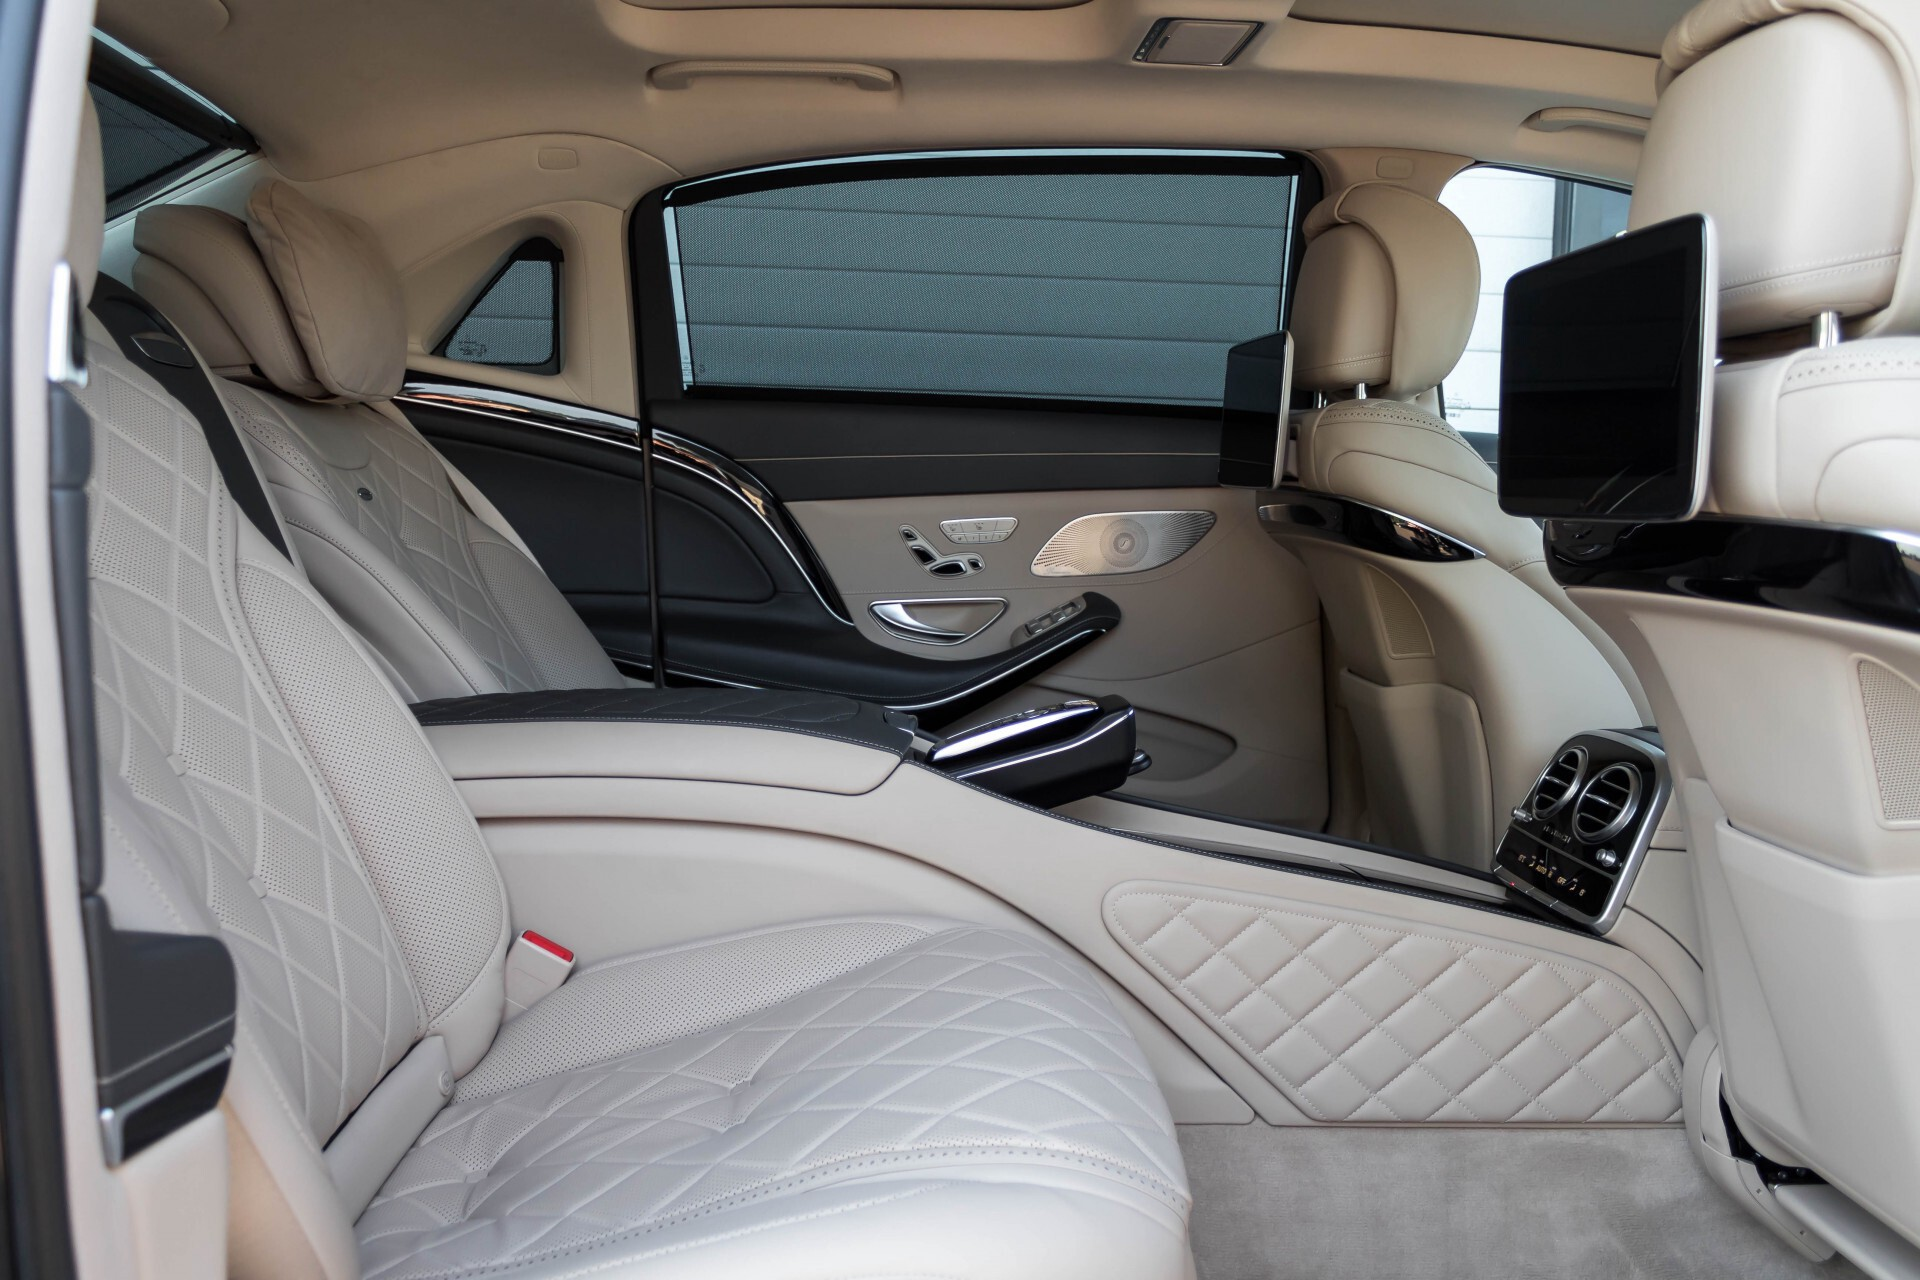 Mercedes-Benz S-Klasse 560 Maybach 4-M Designo First Class Full Options Aut9 Foto 4